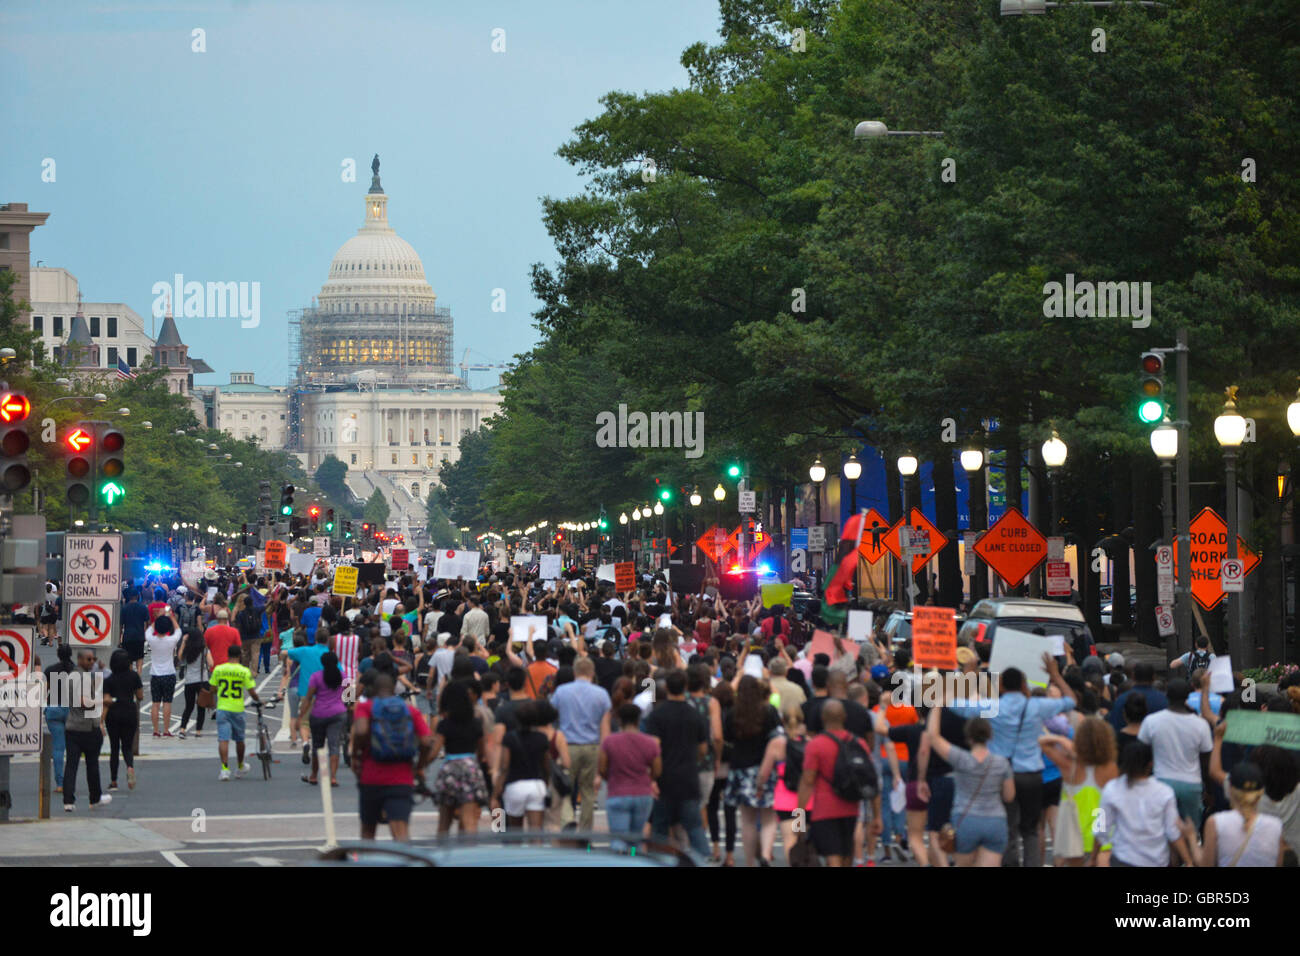 Washington, DC, USA. 7th July, 2016. Hundreds of Black Lives Matter protesters march from the White House to the - Stock Image